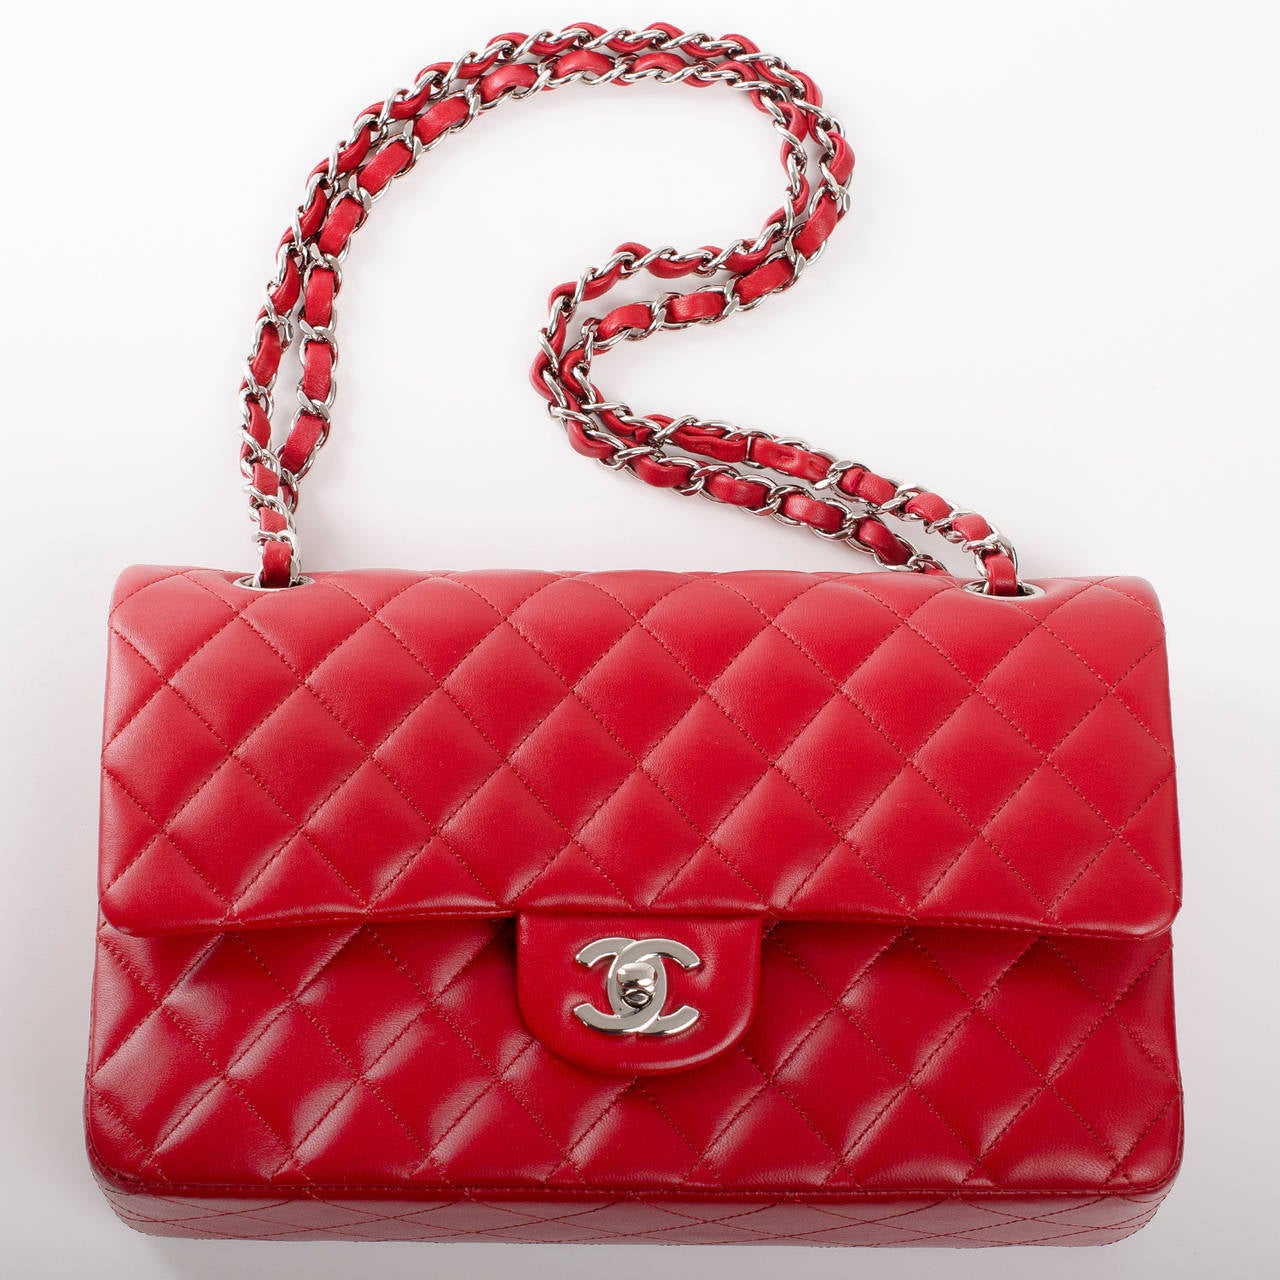 Chanel Red Quilted Lambskin Medium Classic Double Flap Bag For Sale 1